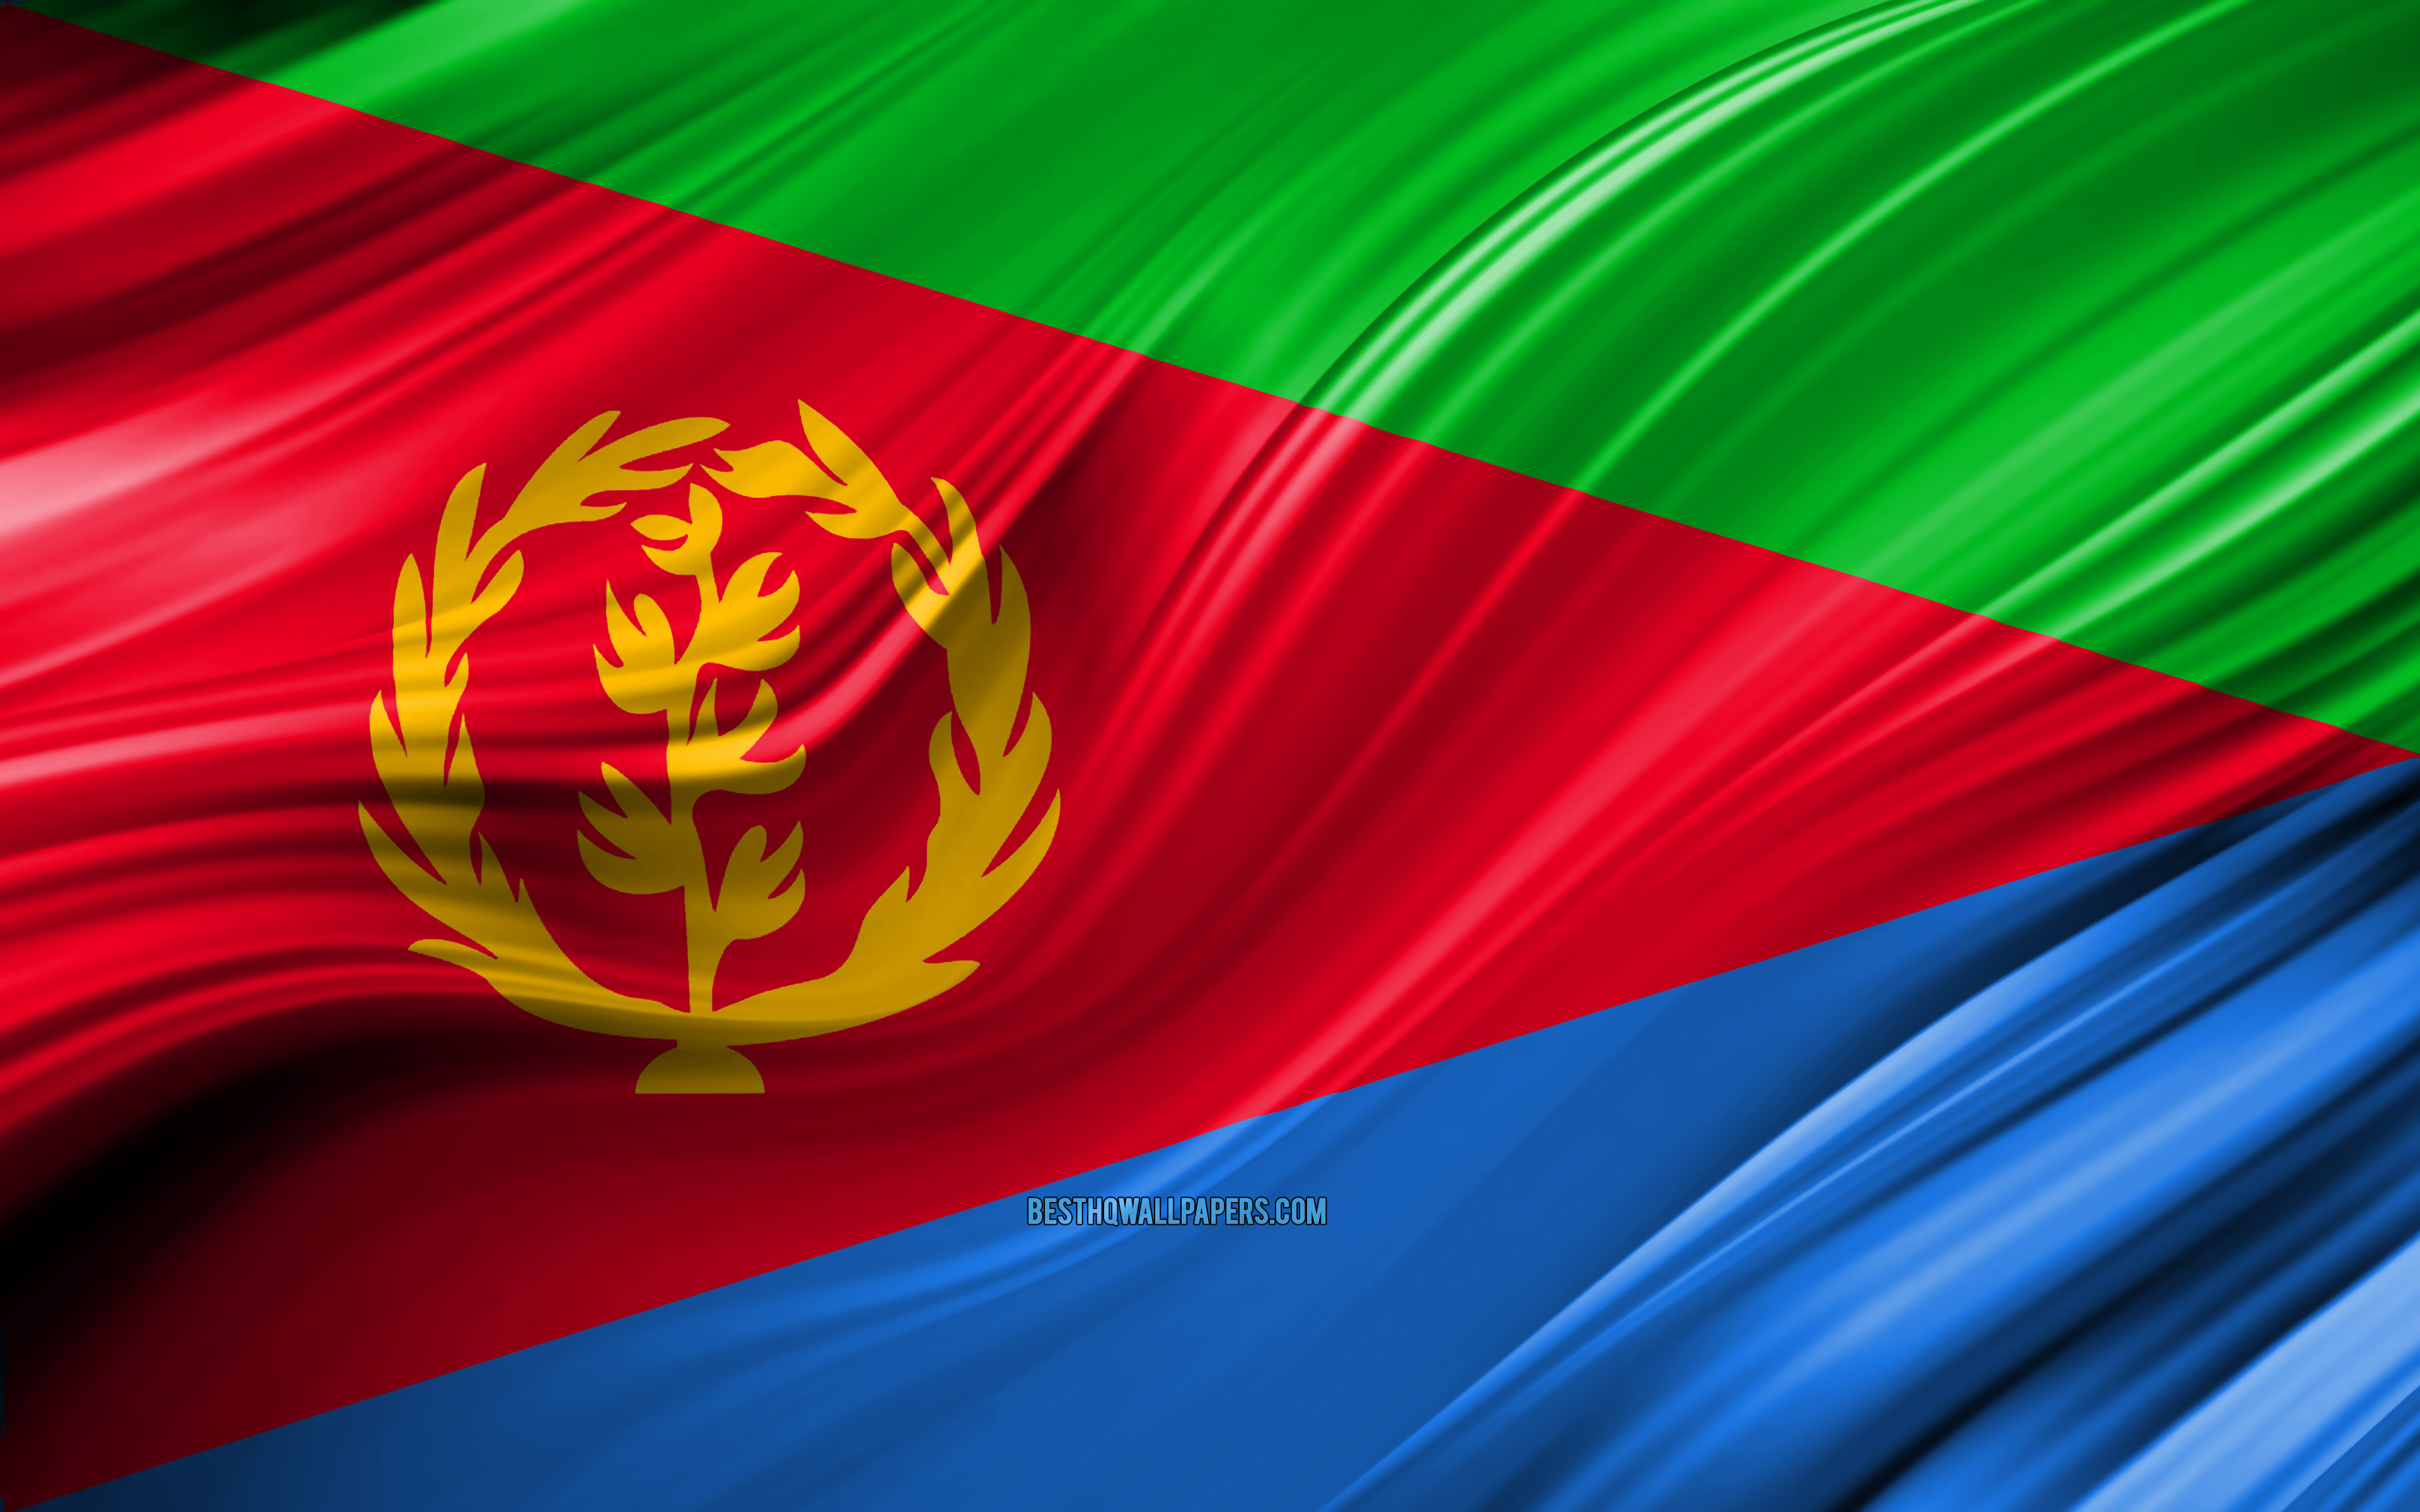 Download wallpapers 4k Eritrean flag African countries 3D waves 3840x2400